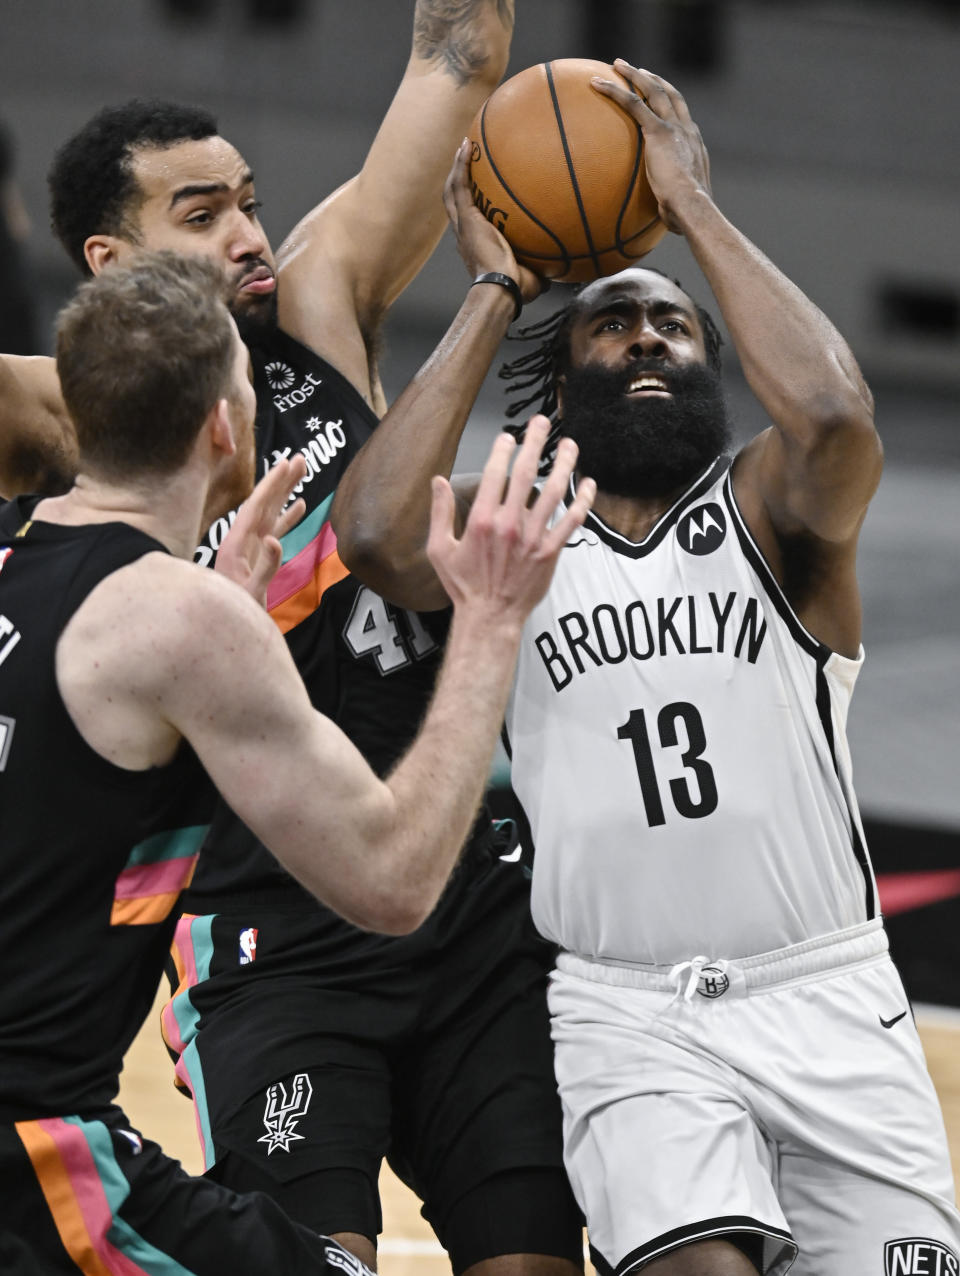 Brooklyn Nets' James Harden (13) attempts to shoot as he is defended by San Antonio Spurs' Trey Lyles (41) and Jakob Poeltl during the second half of an NBA basketball game, Monday, March 1, 2021, in San Antonio. (AP Photo/Darren Abate)